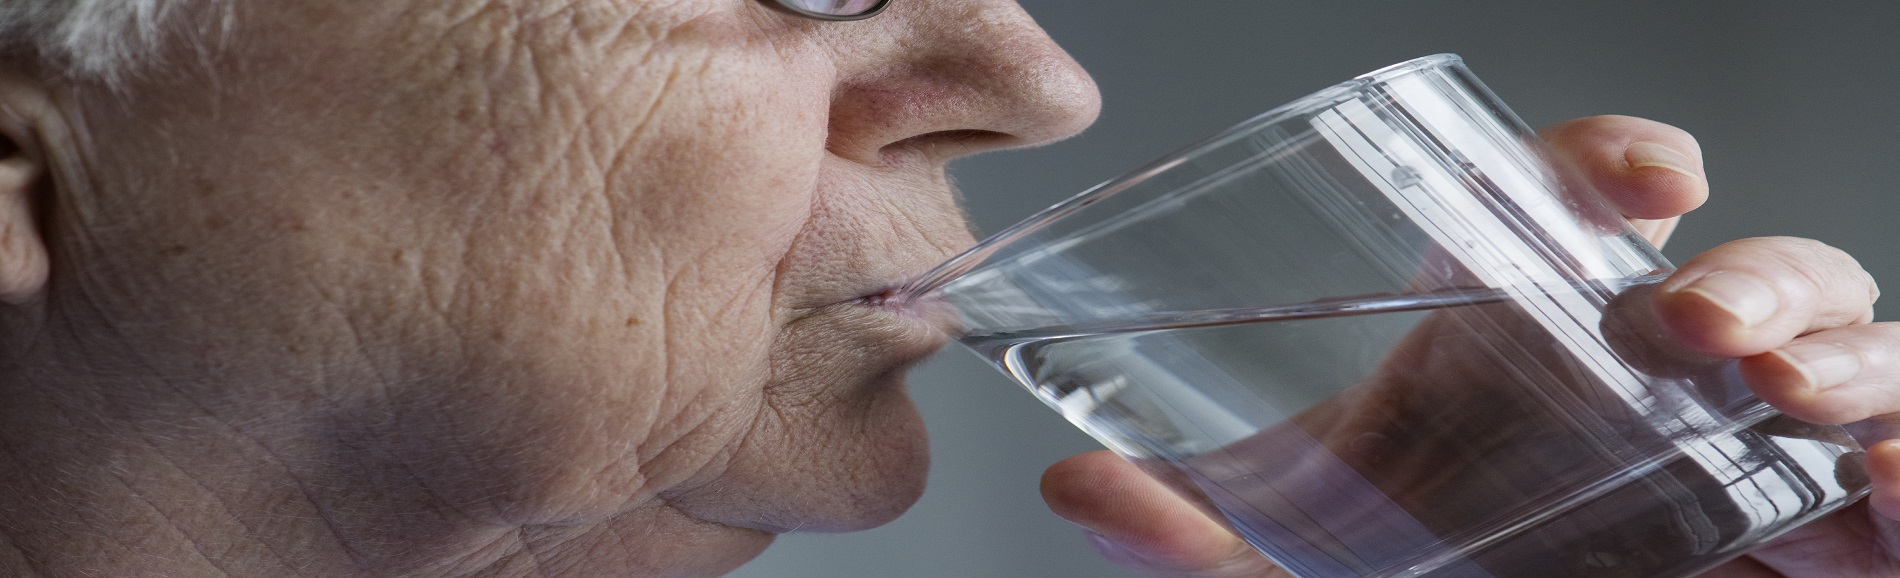 Older adult drinking a glass of water